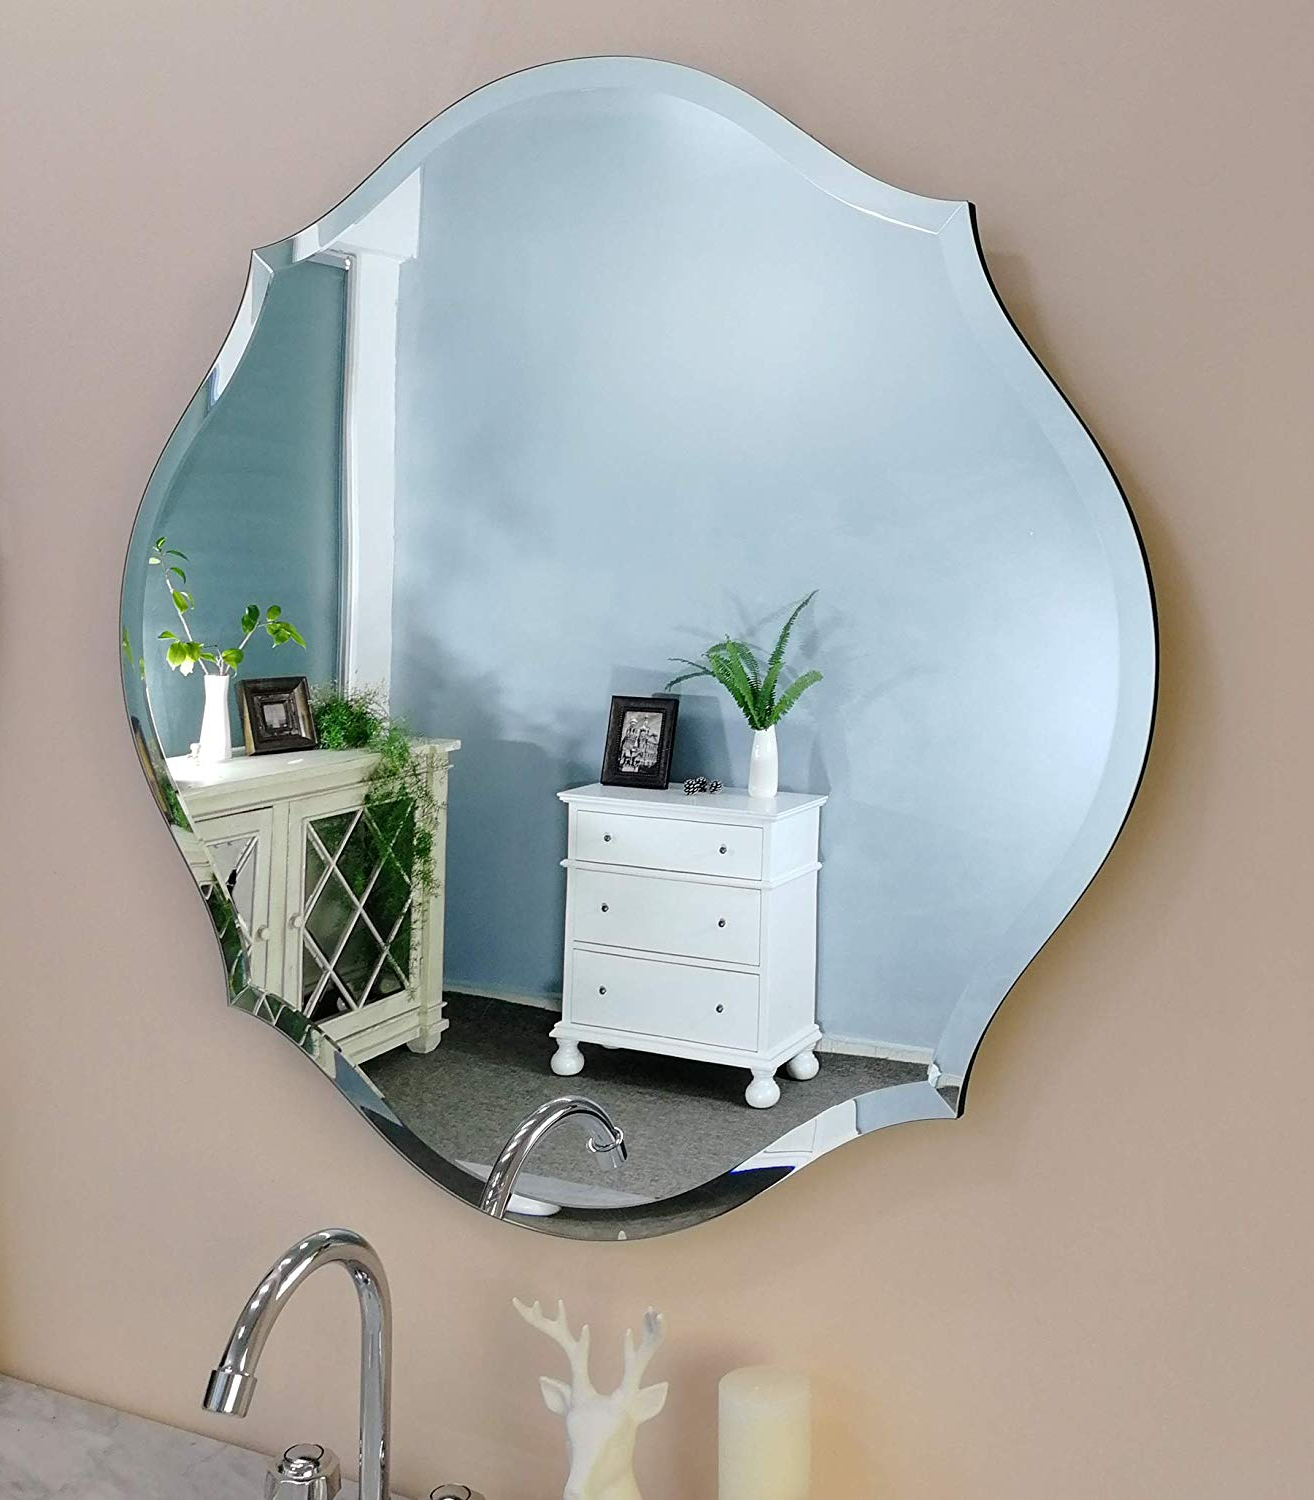 "Mirror Trend 28""x 28"" Gentle Scalloped Frameless Beveled Mirrors For  Bathroom Silver Mirror For Wall Decorative For Living Room And Bedroom  Mirrors Regarding Recent Reign Frameless Oval Scalloped Beveled Wall Mirrors (View 9 of 20)"